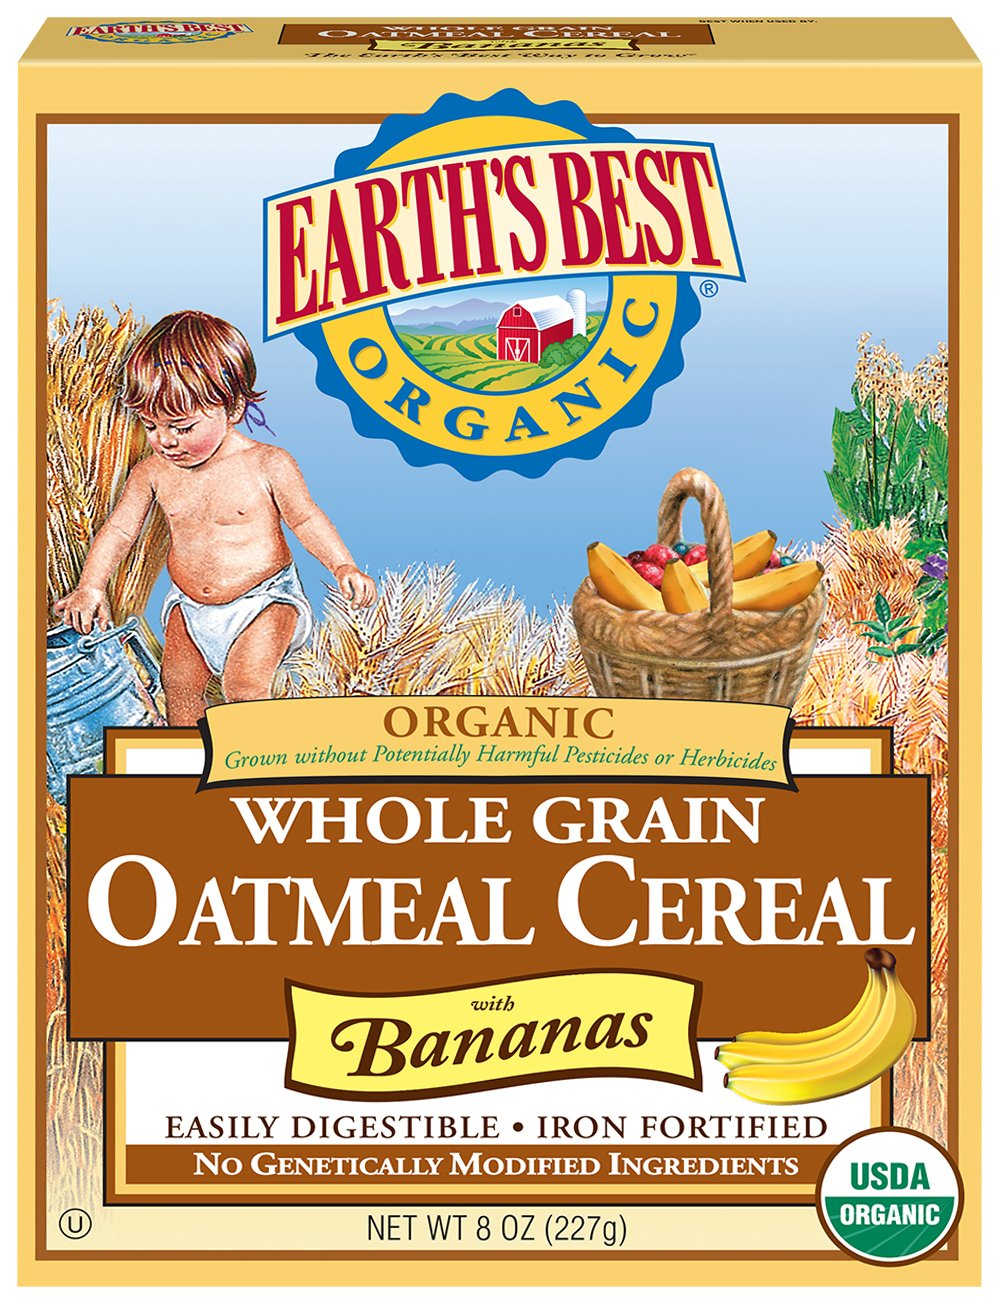 Earth's Best Organic Infant Cereal, Whole Grain Oatmeal with Bananas, 8 oz. Box by Earth's Best (Image #1)